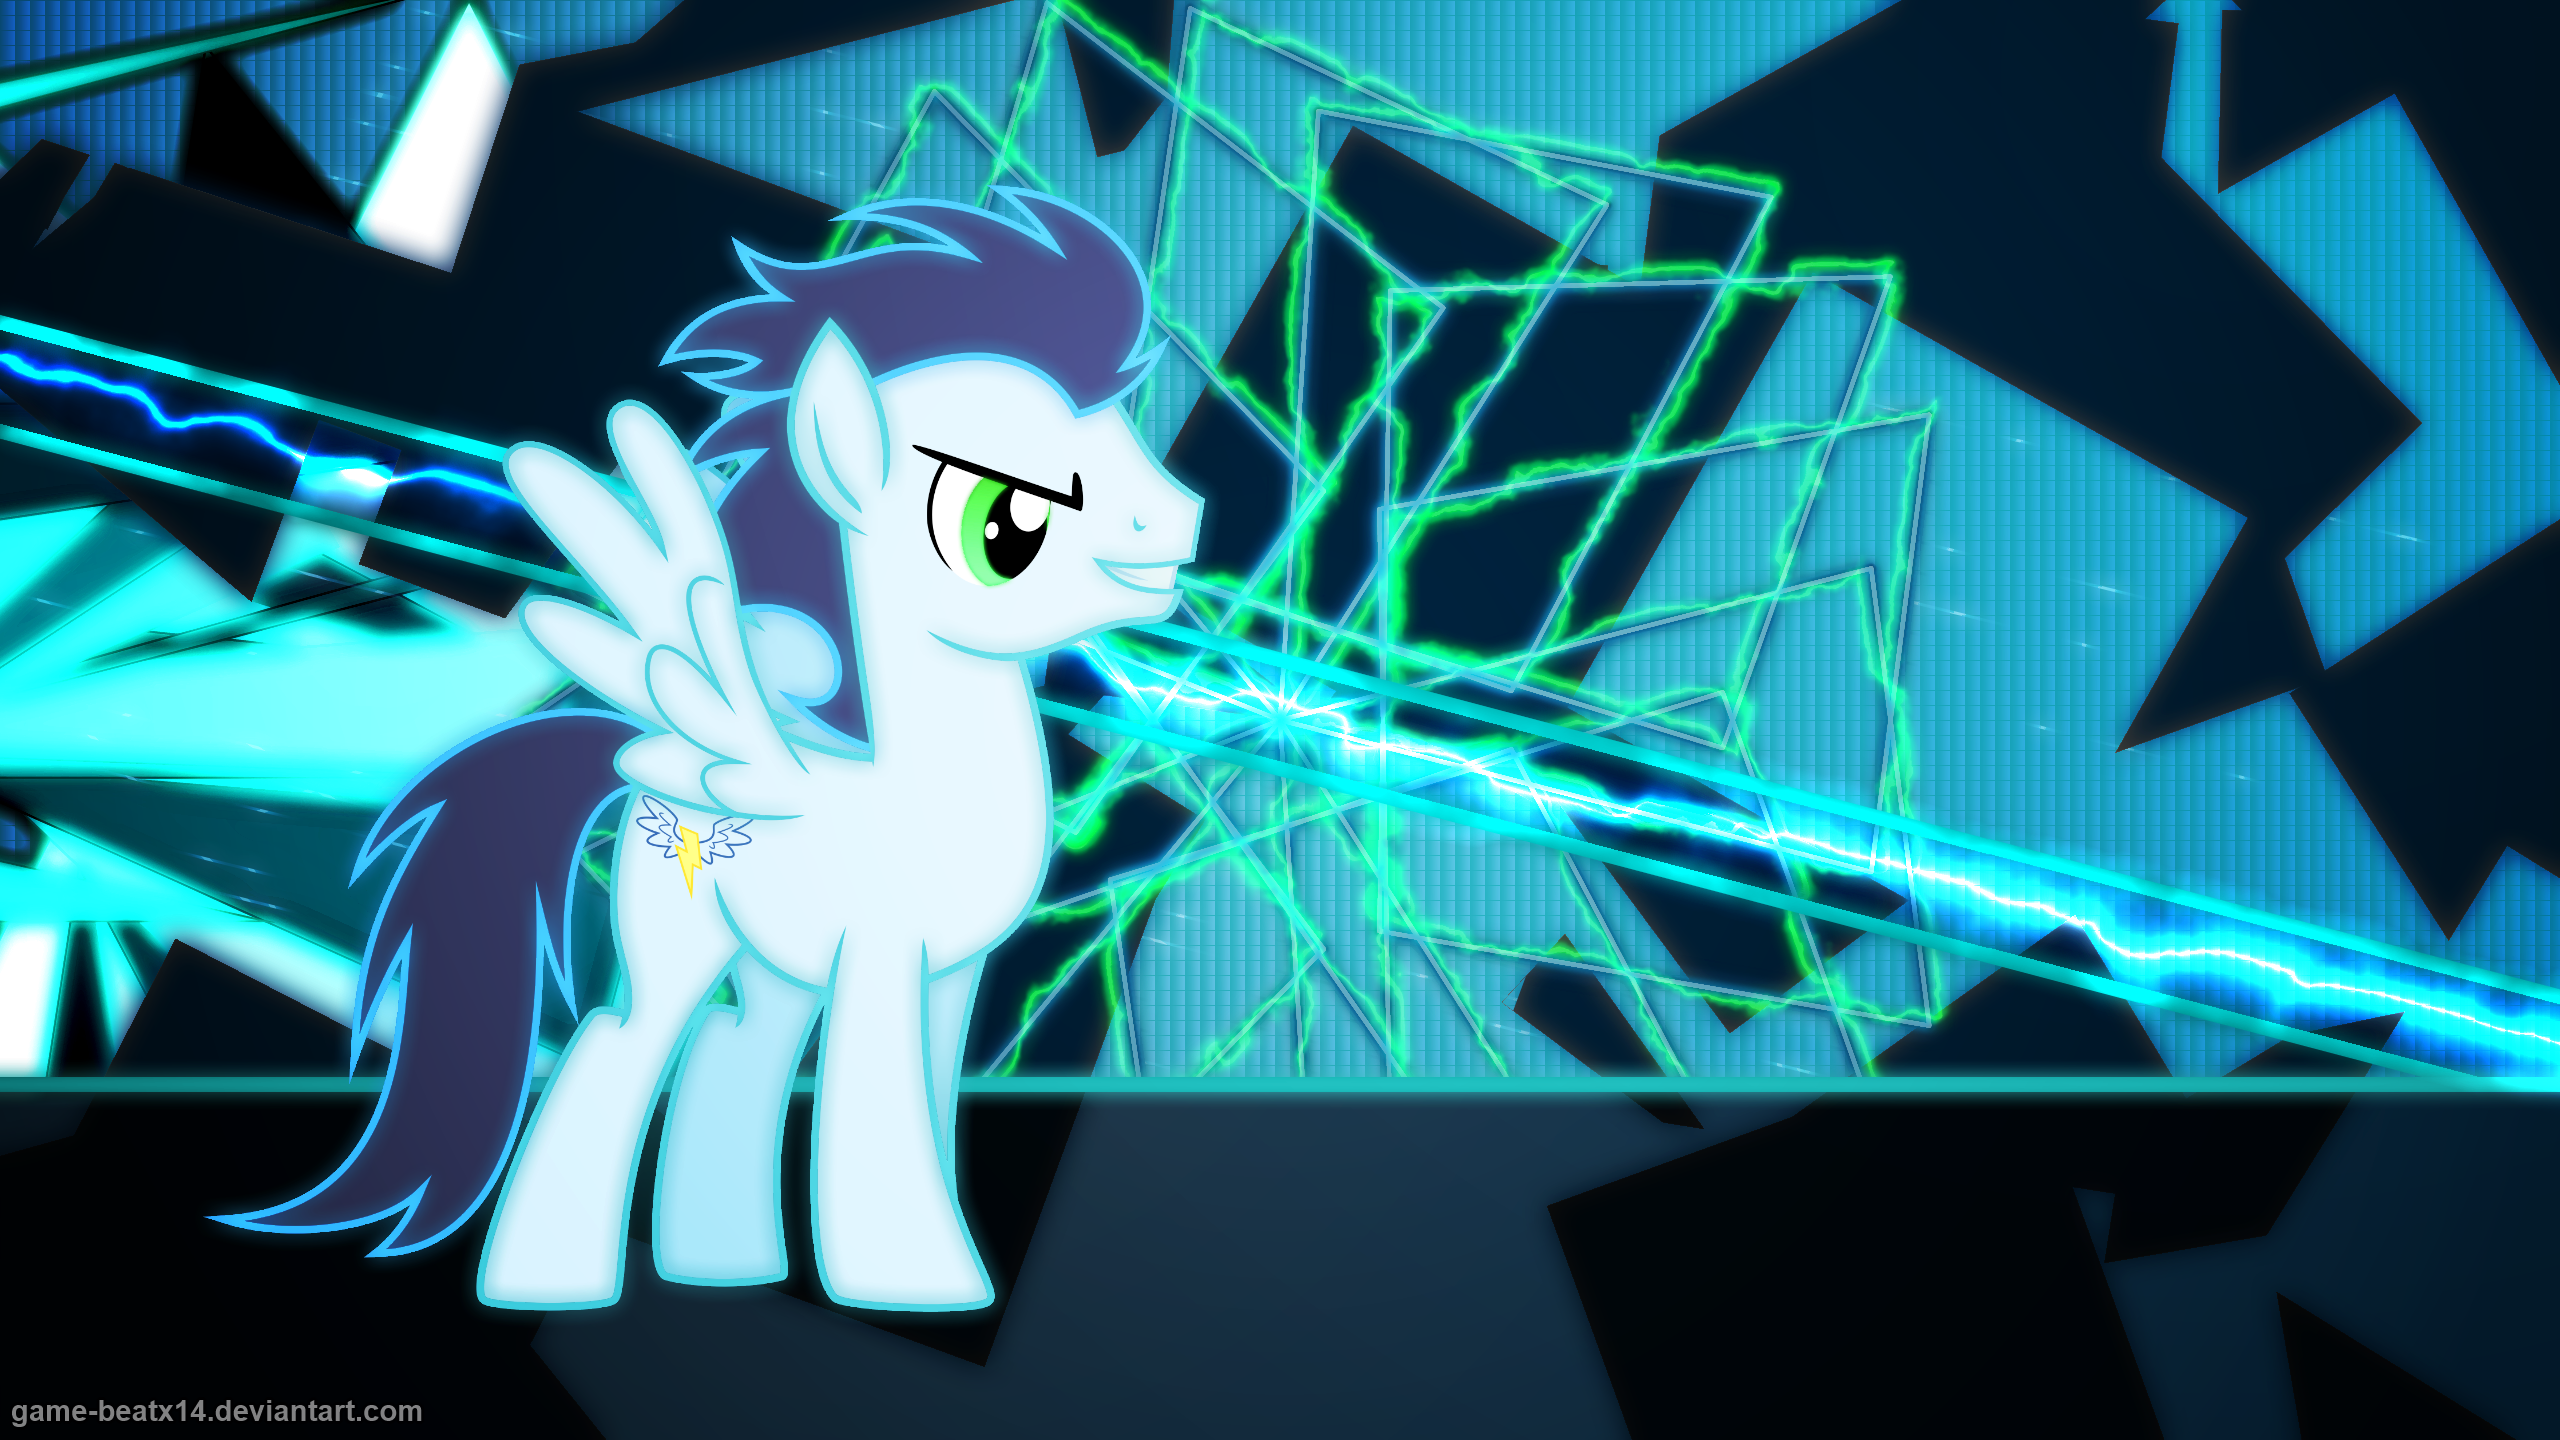 Soarin Wallpaper 2 by ChainChomp2 and Game-BeatX14